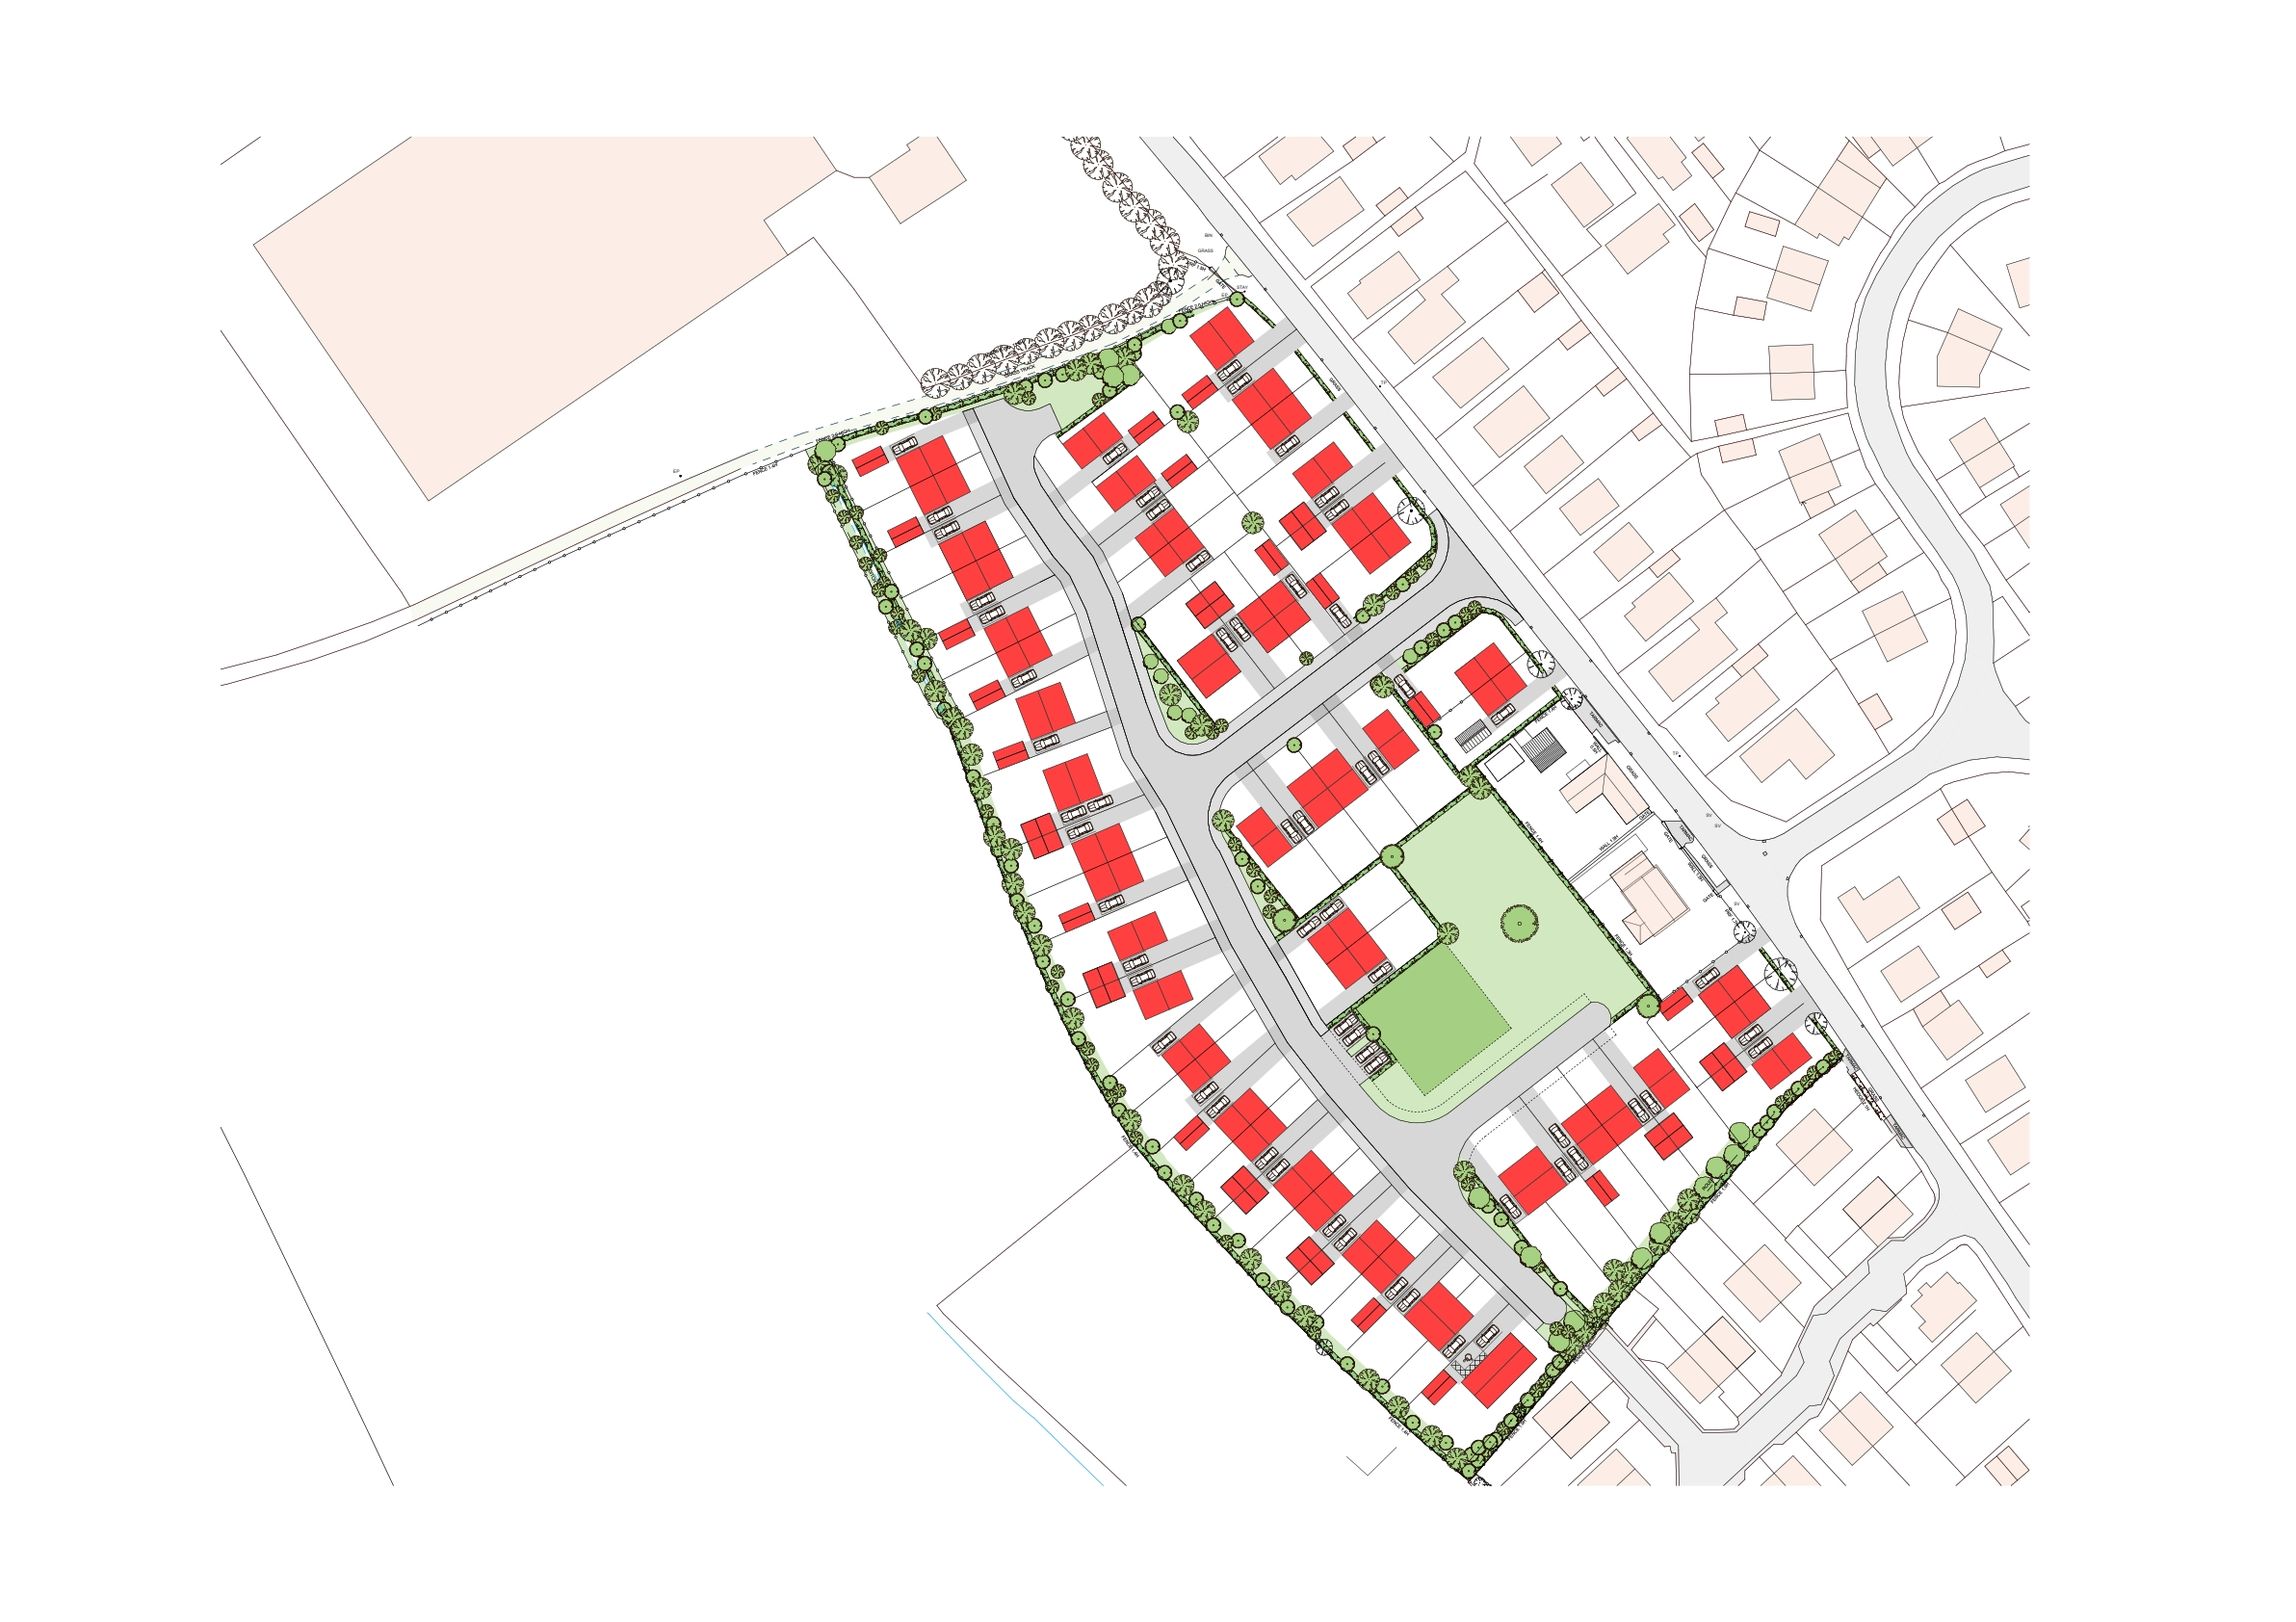 Outline Permission for 52 Houses